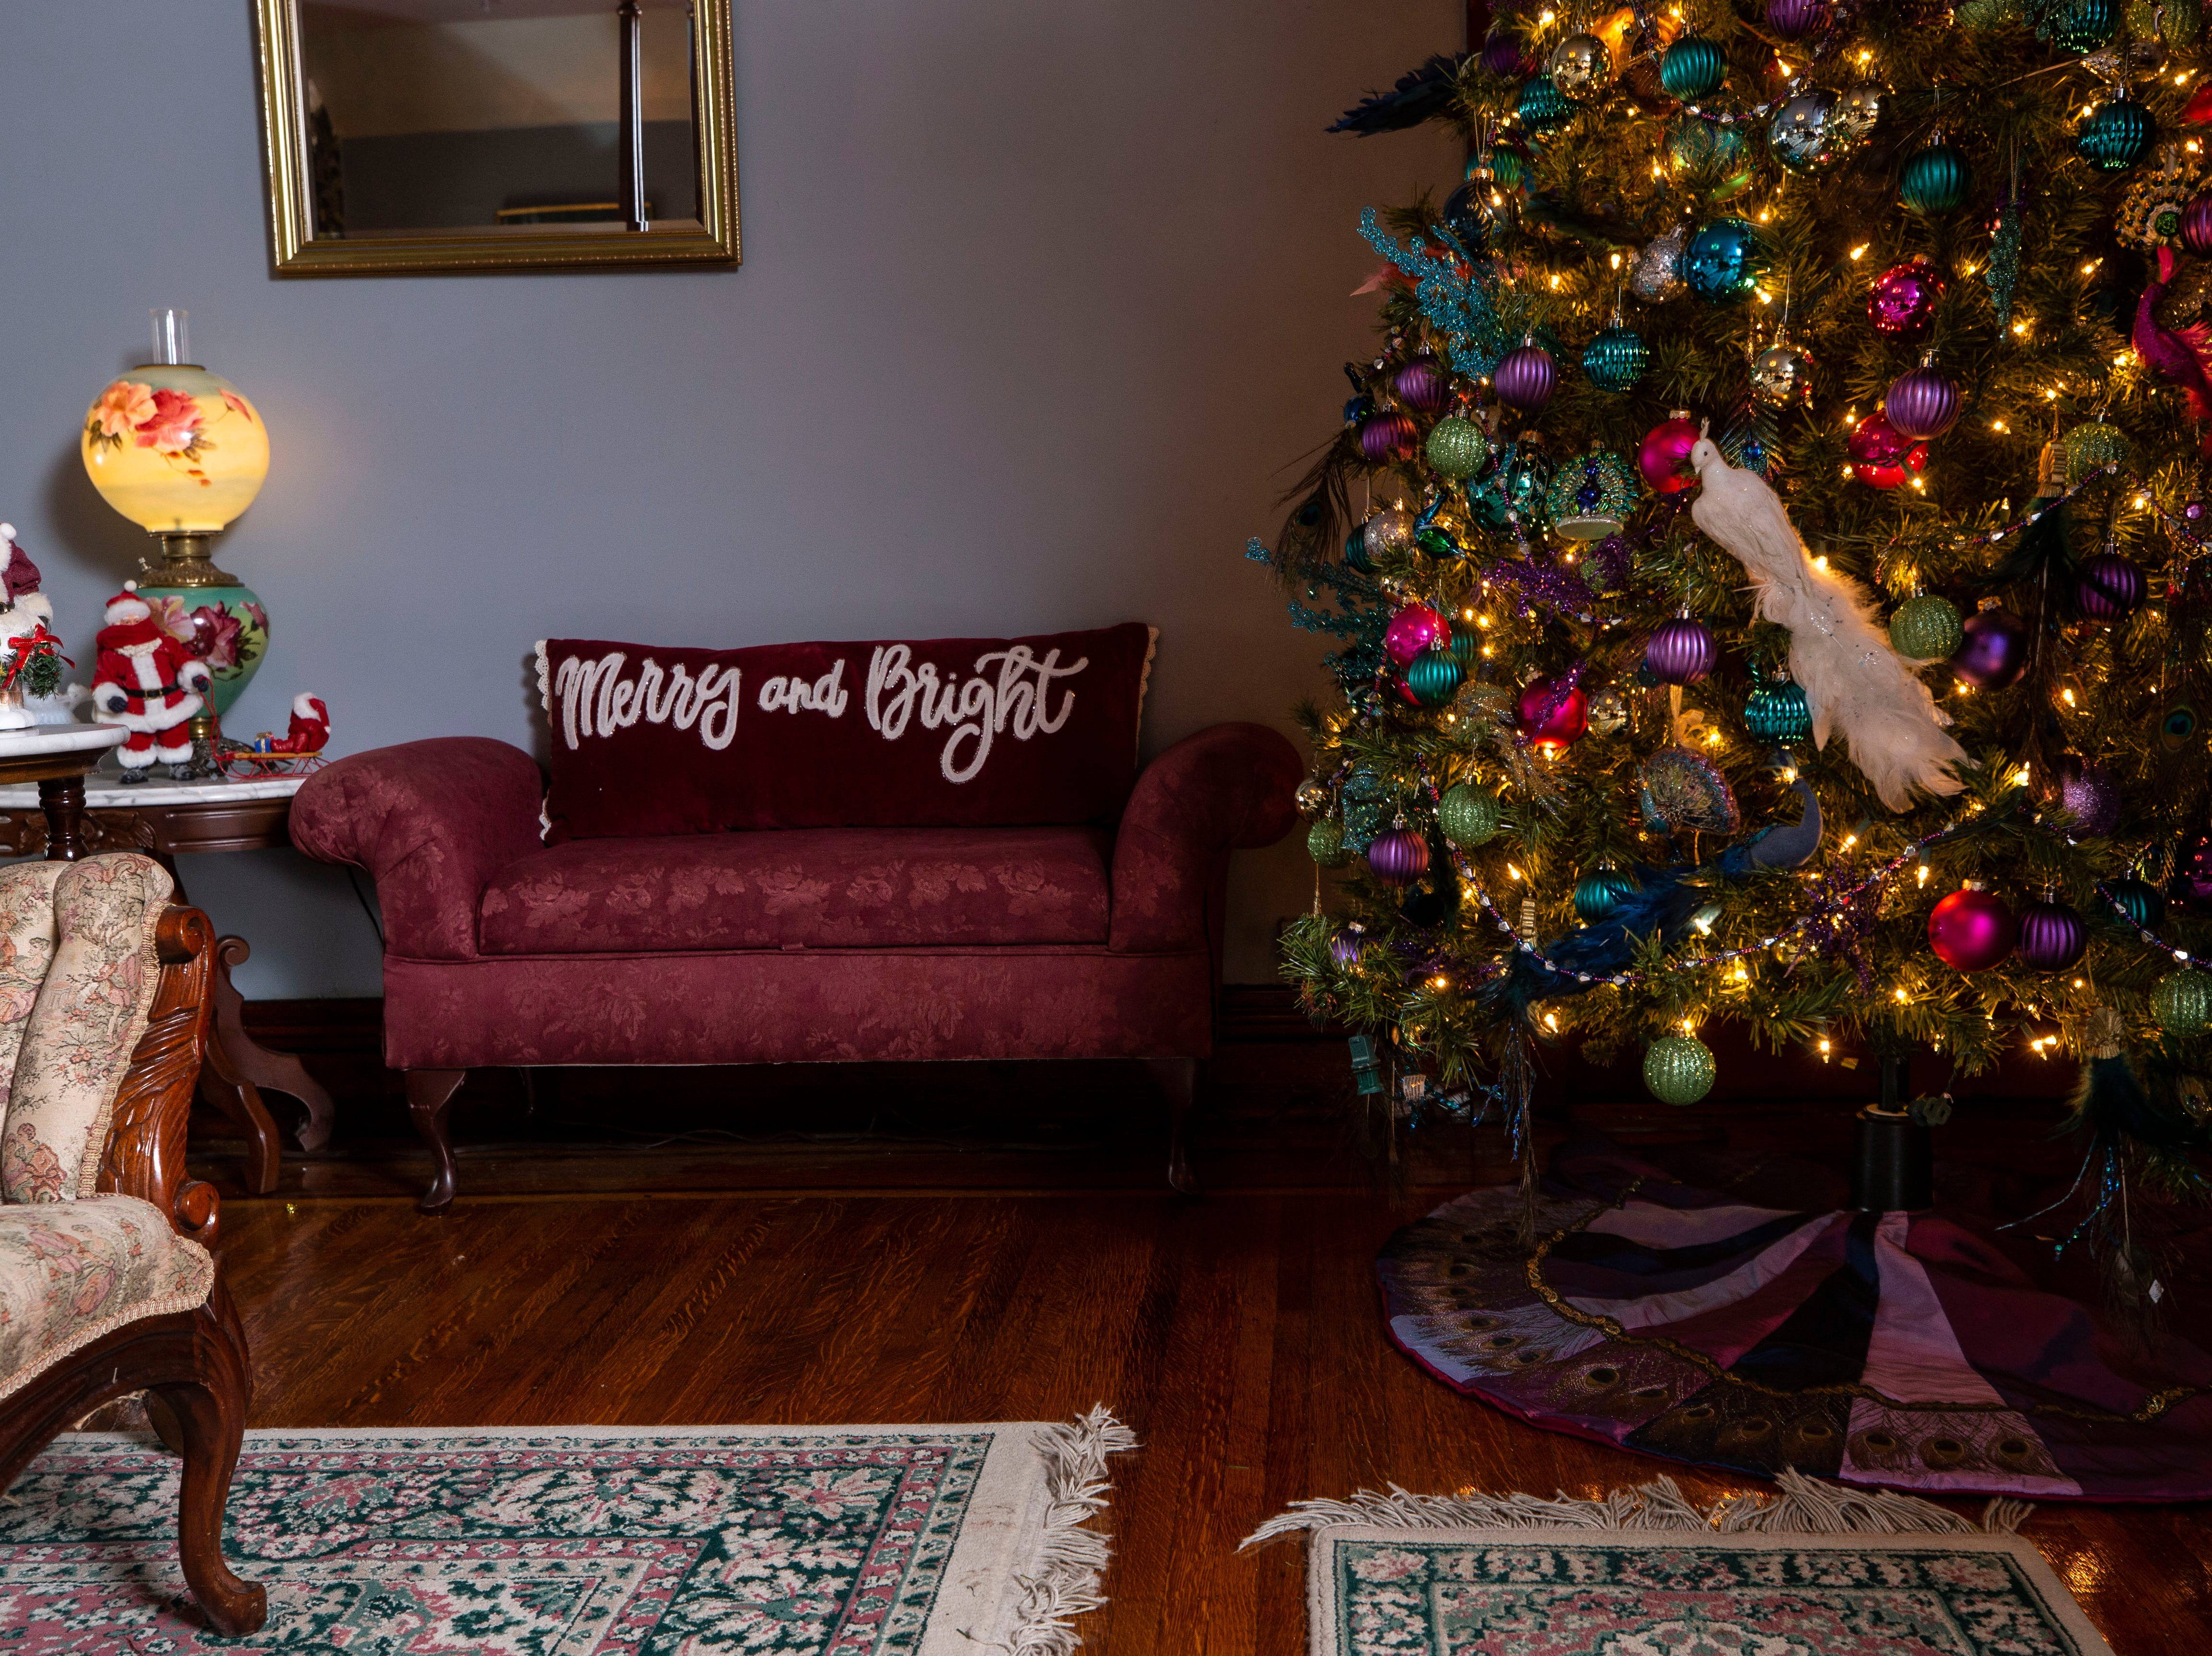 A Christmas tree decorates a corner of a third-floor bedroom as a holiday pillow decorates a sitting couch.